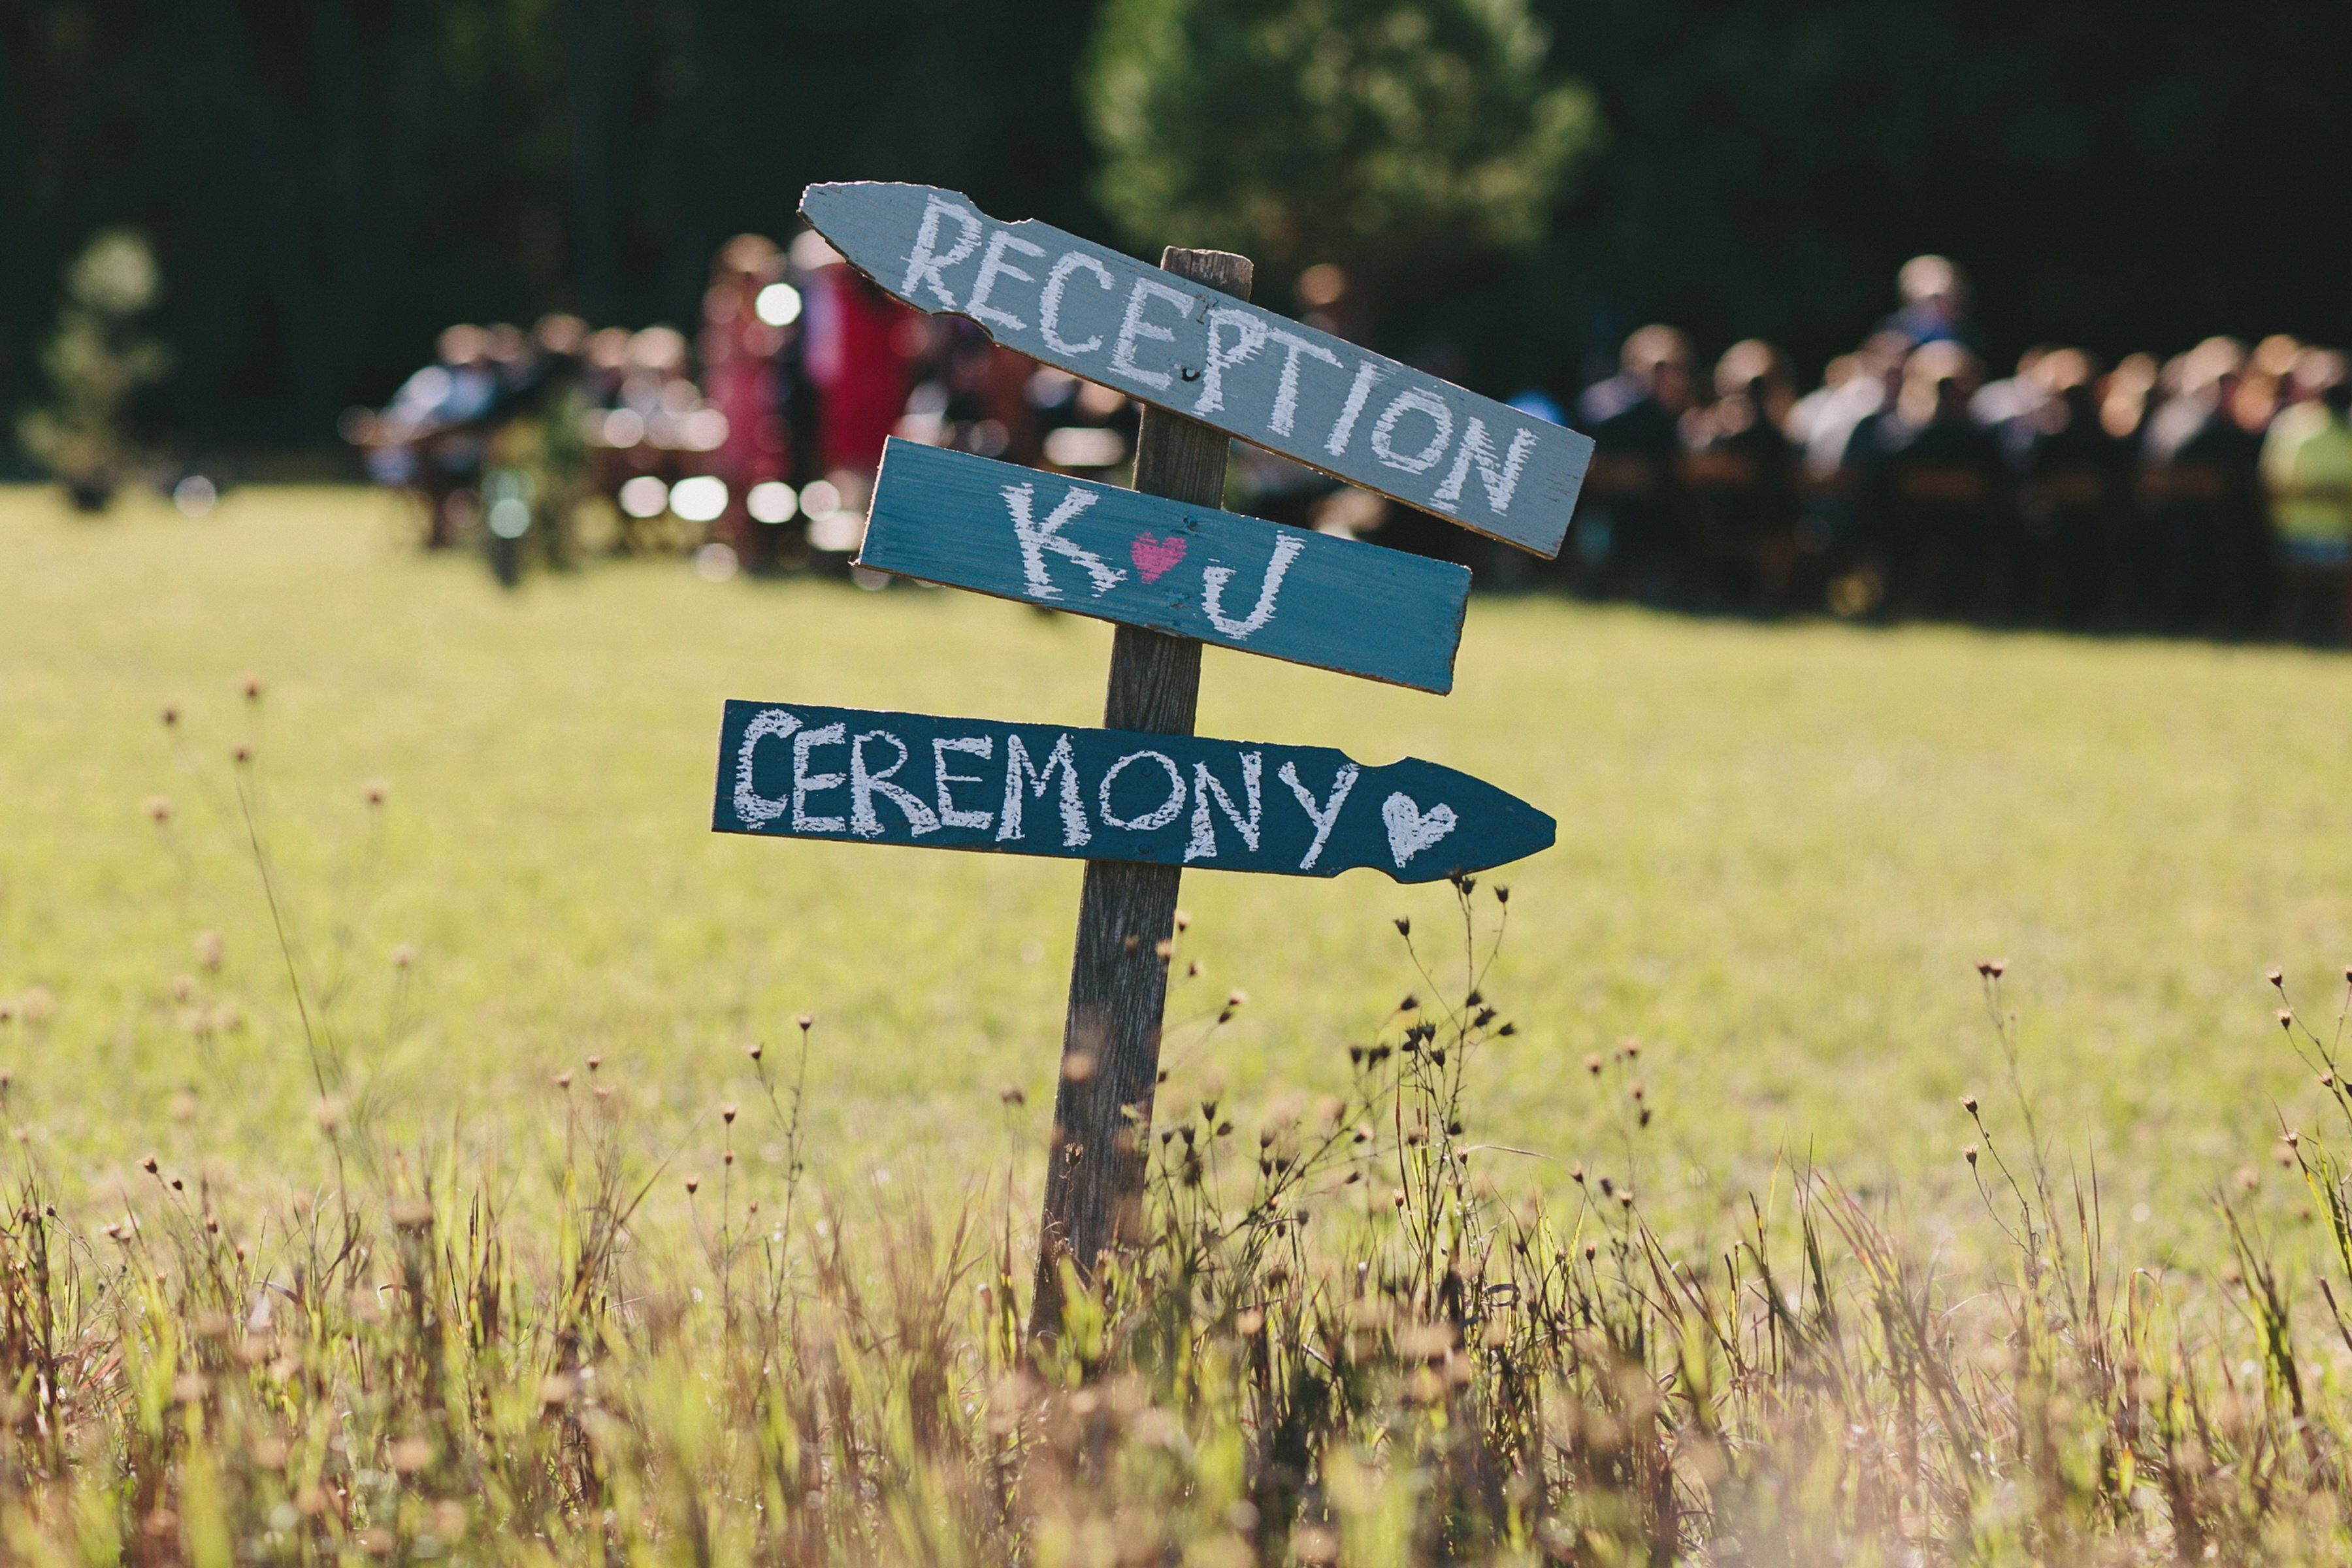 Wooden Ceremony And Reception Sign